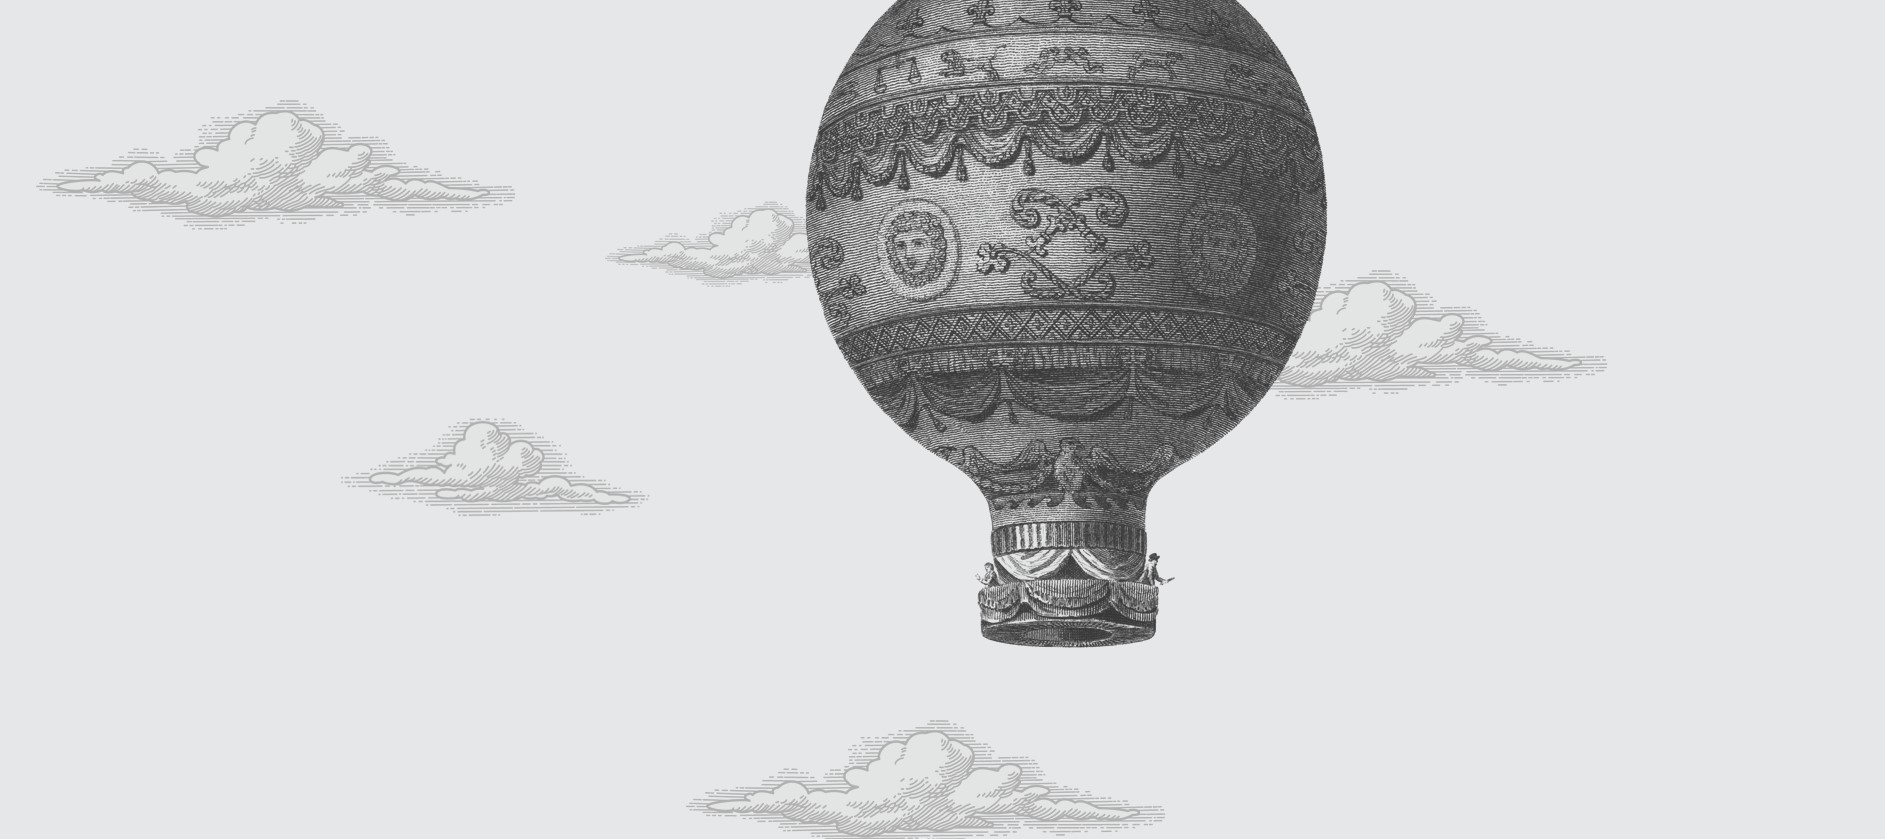 A Collection of Interesting Parallax Effects - 1stWebDesigner